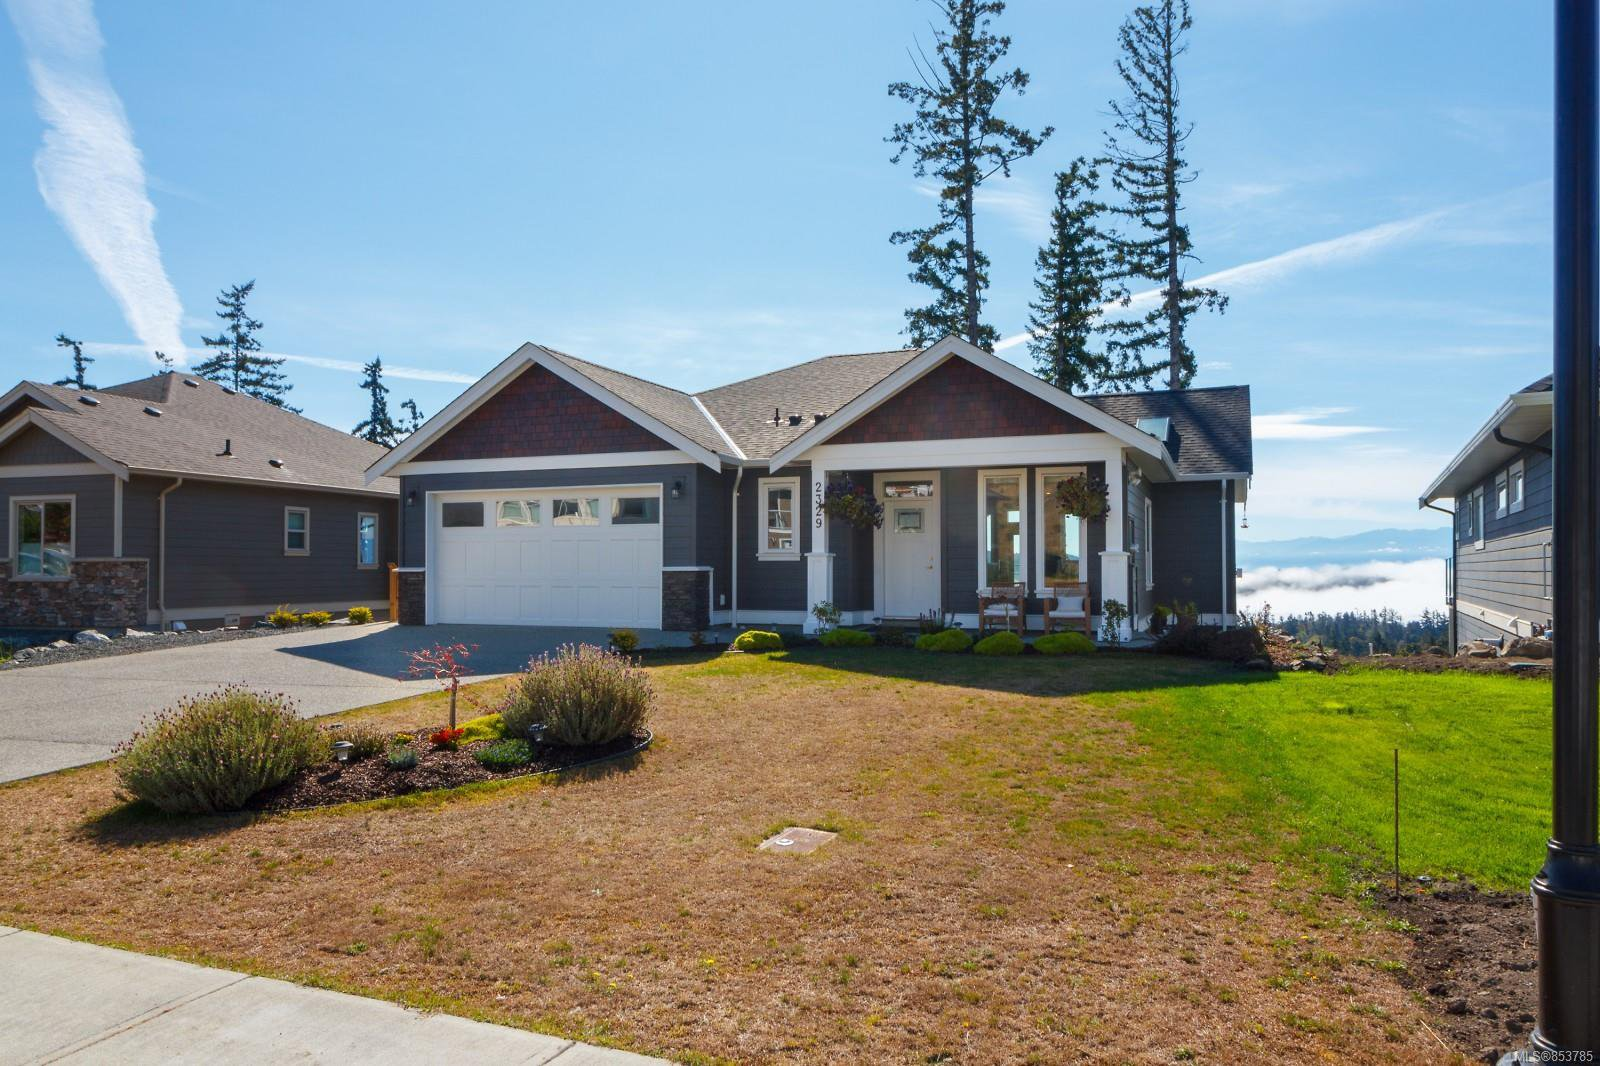 Main Photo: 2329 Mountain Heights Dr in : Sk Broomhill Single Family Detached for sale (Sooke)  : MLS®# 853785